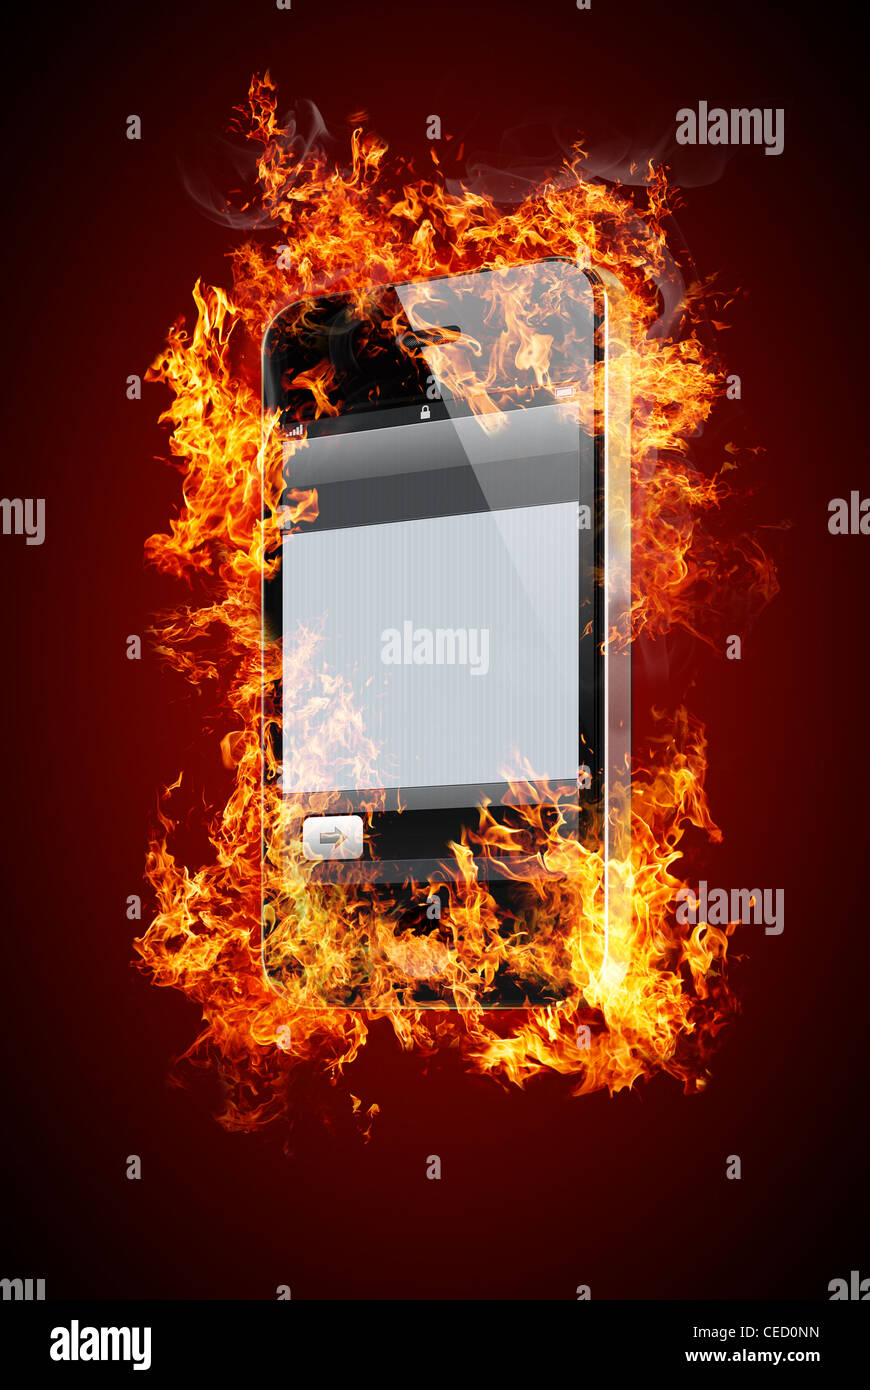 Phone without labels on fire - Stock Image